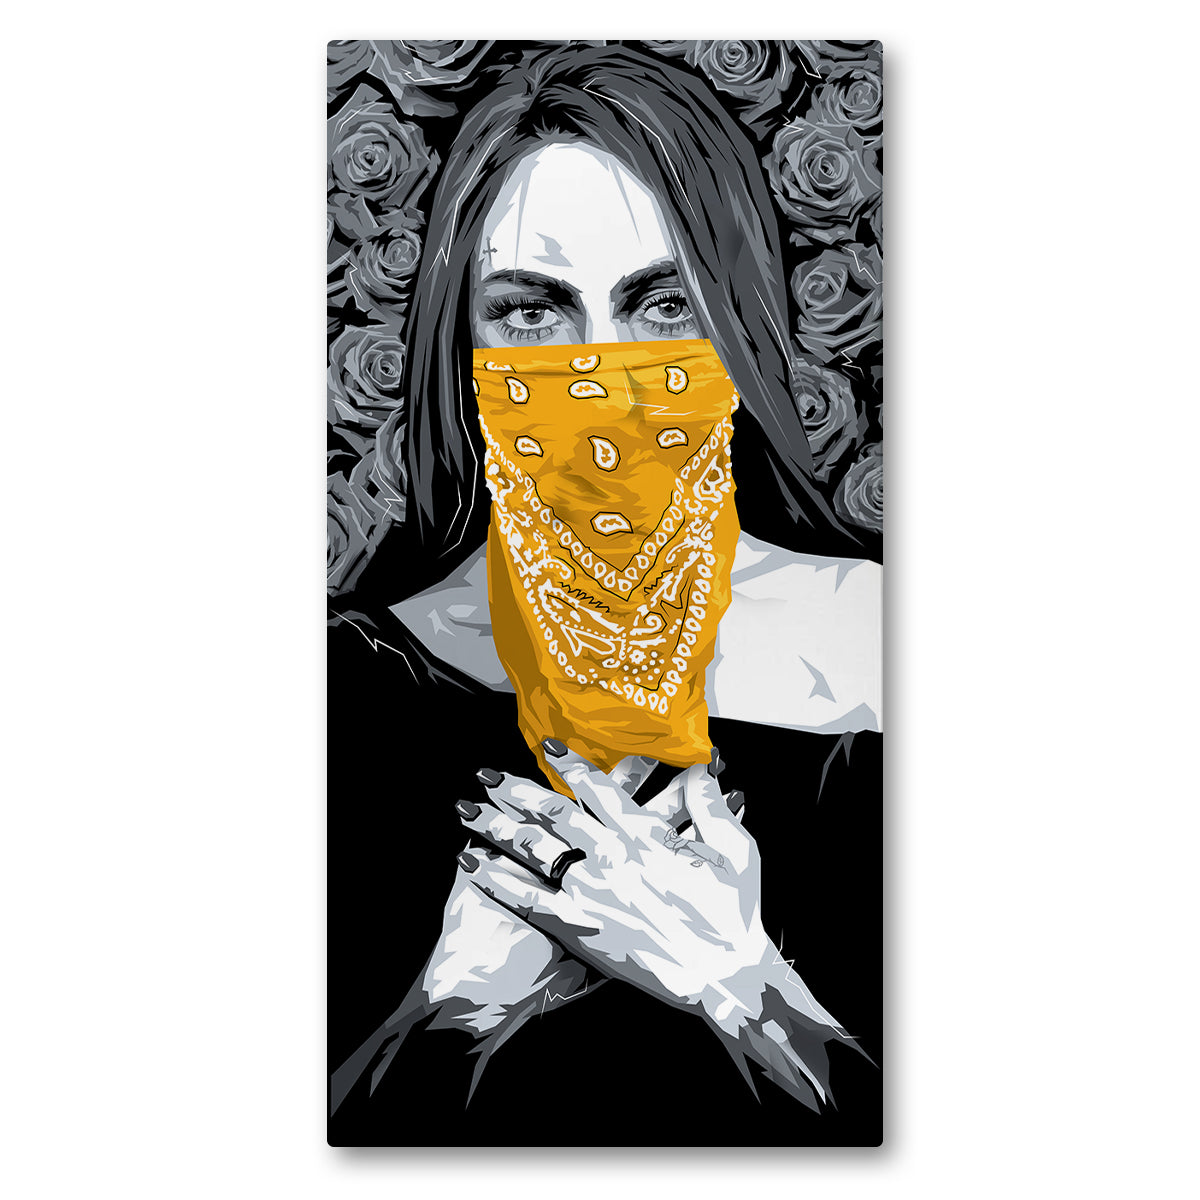 Lost Art Canada - yellow bandana bandita canvas print front view